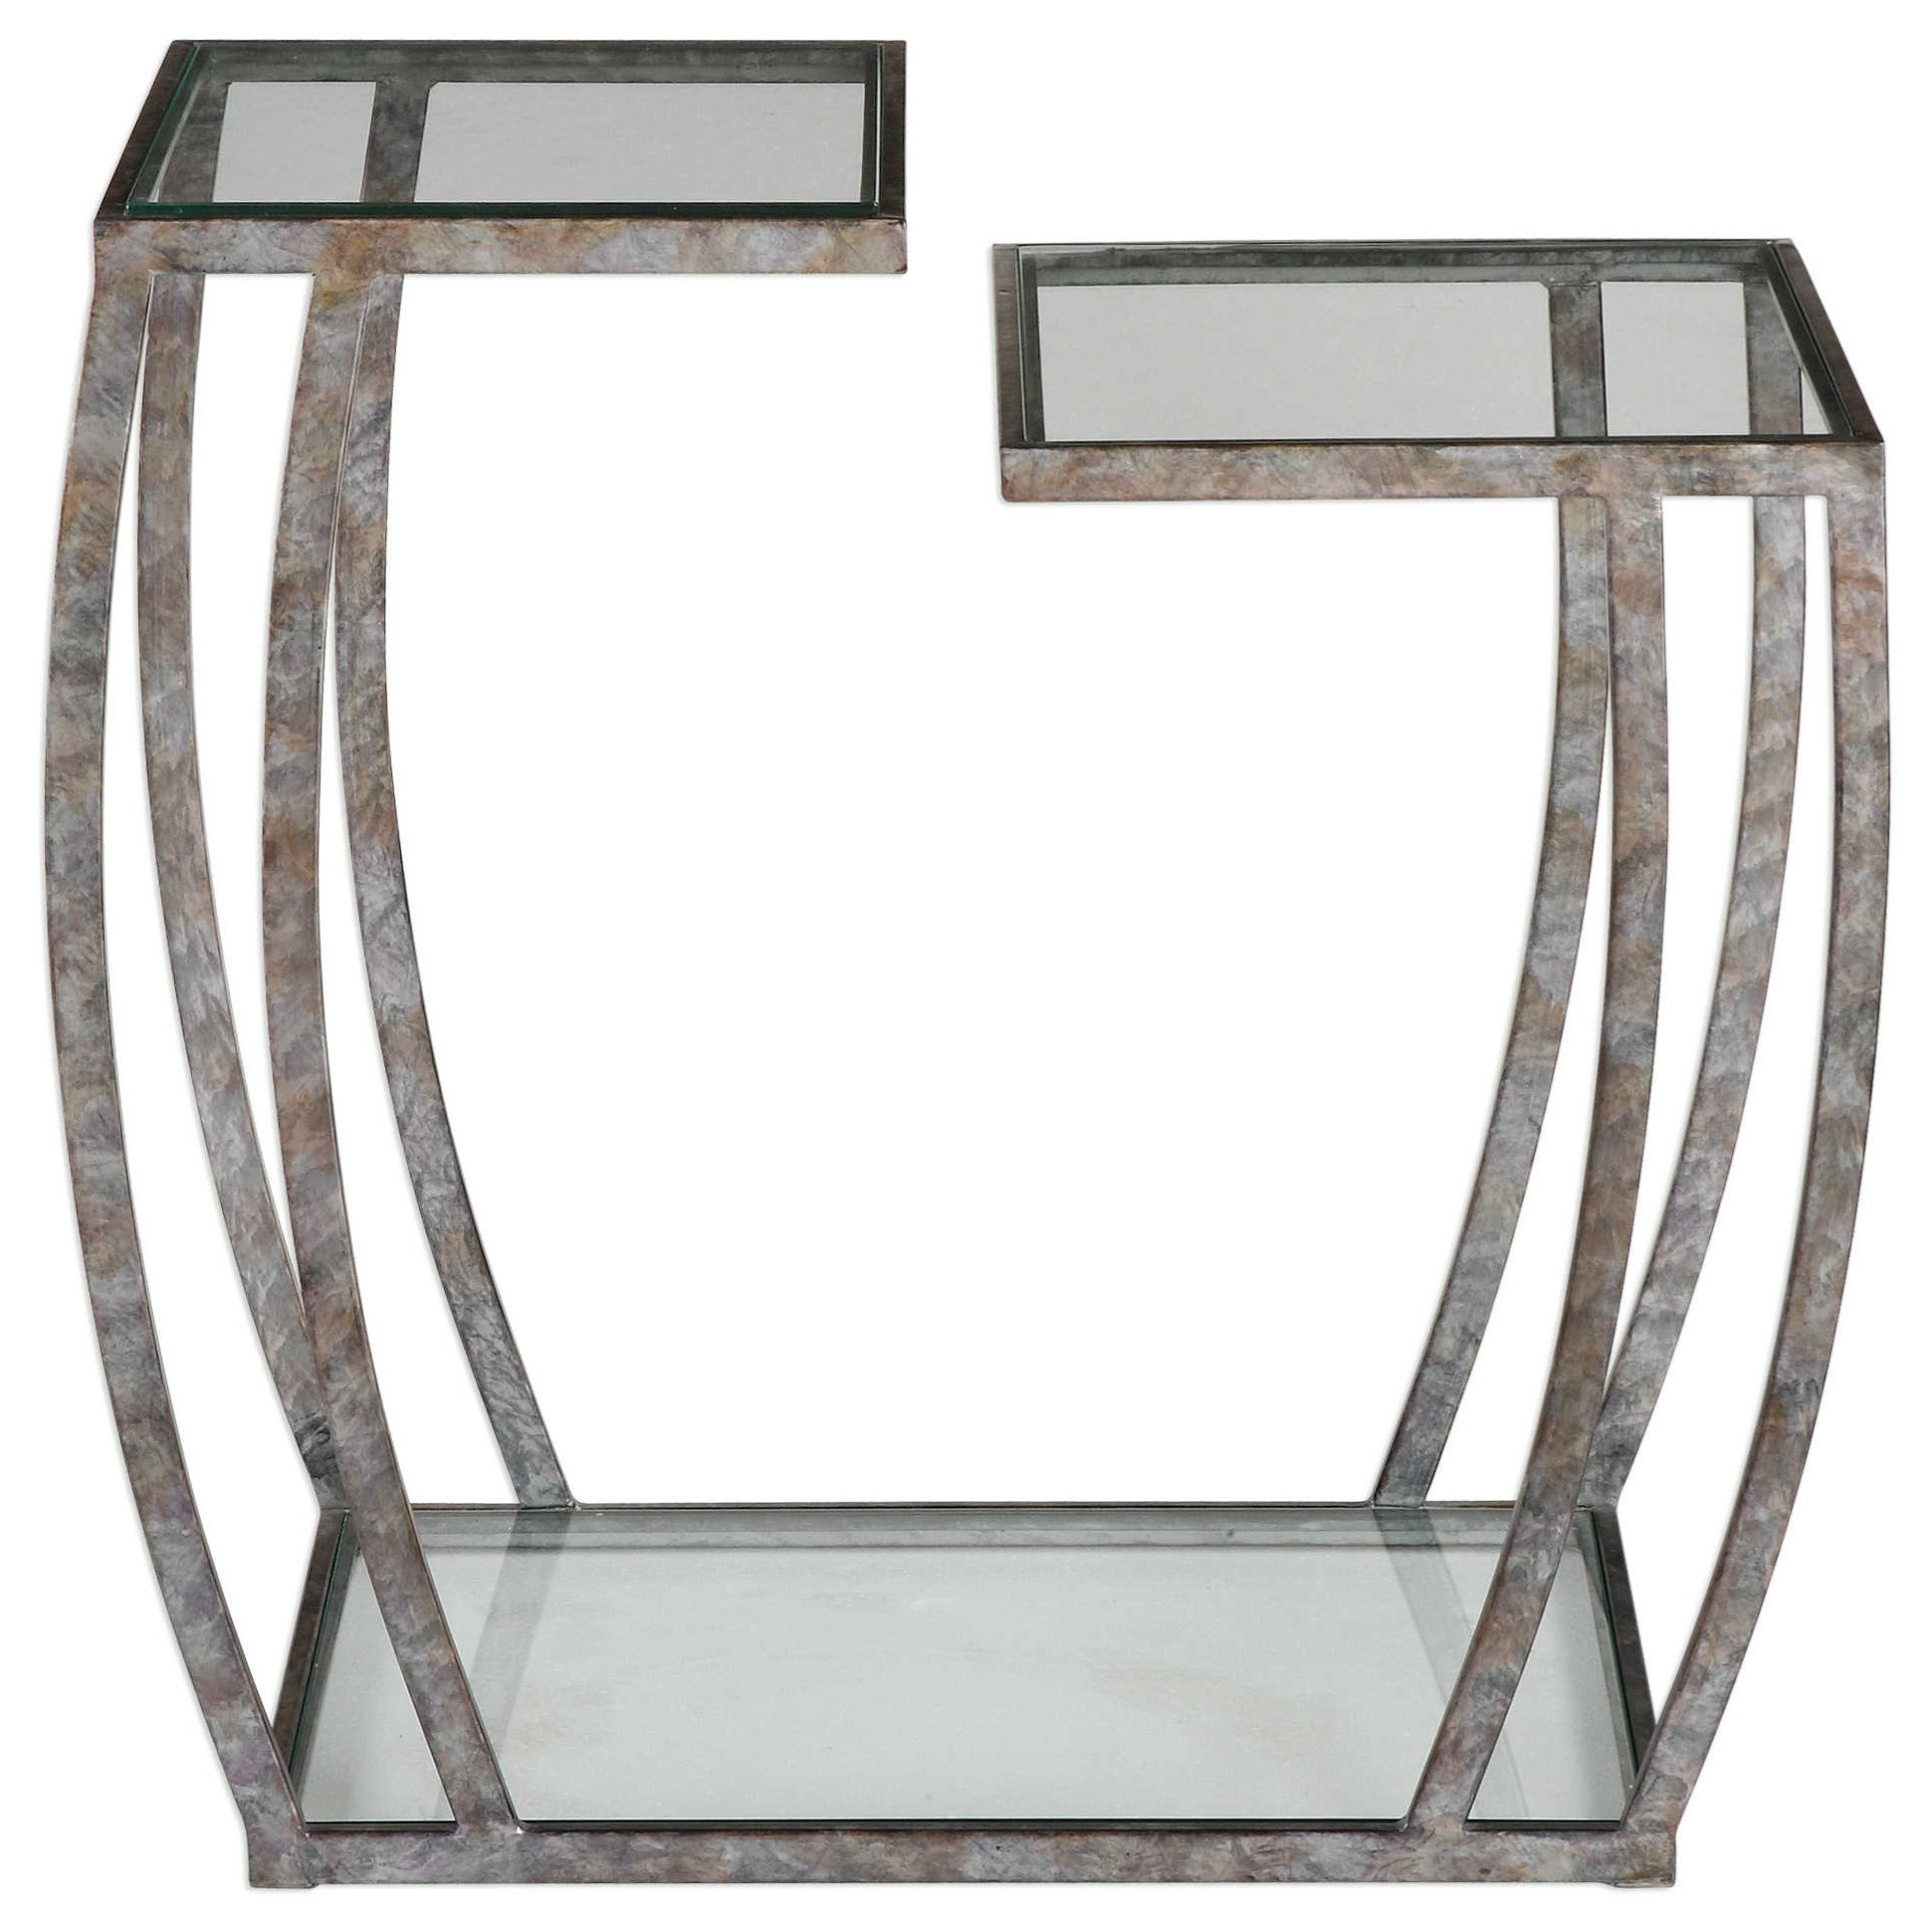 Uttermost Accent Furniture Teeranie Burnished Silver Accent Table - Item Number: 24722